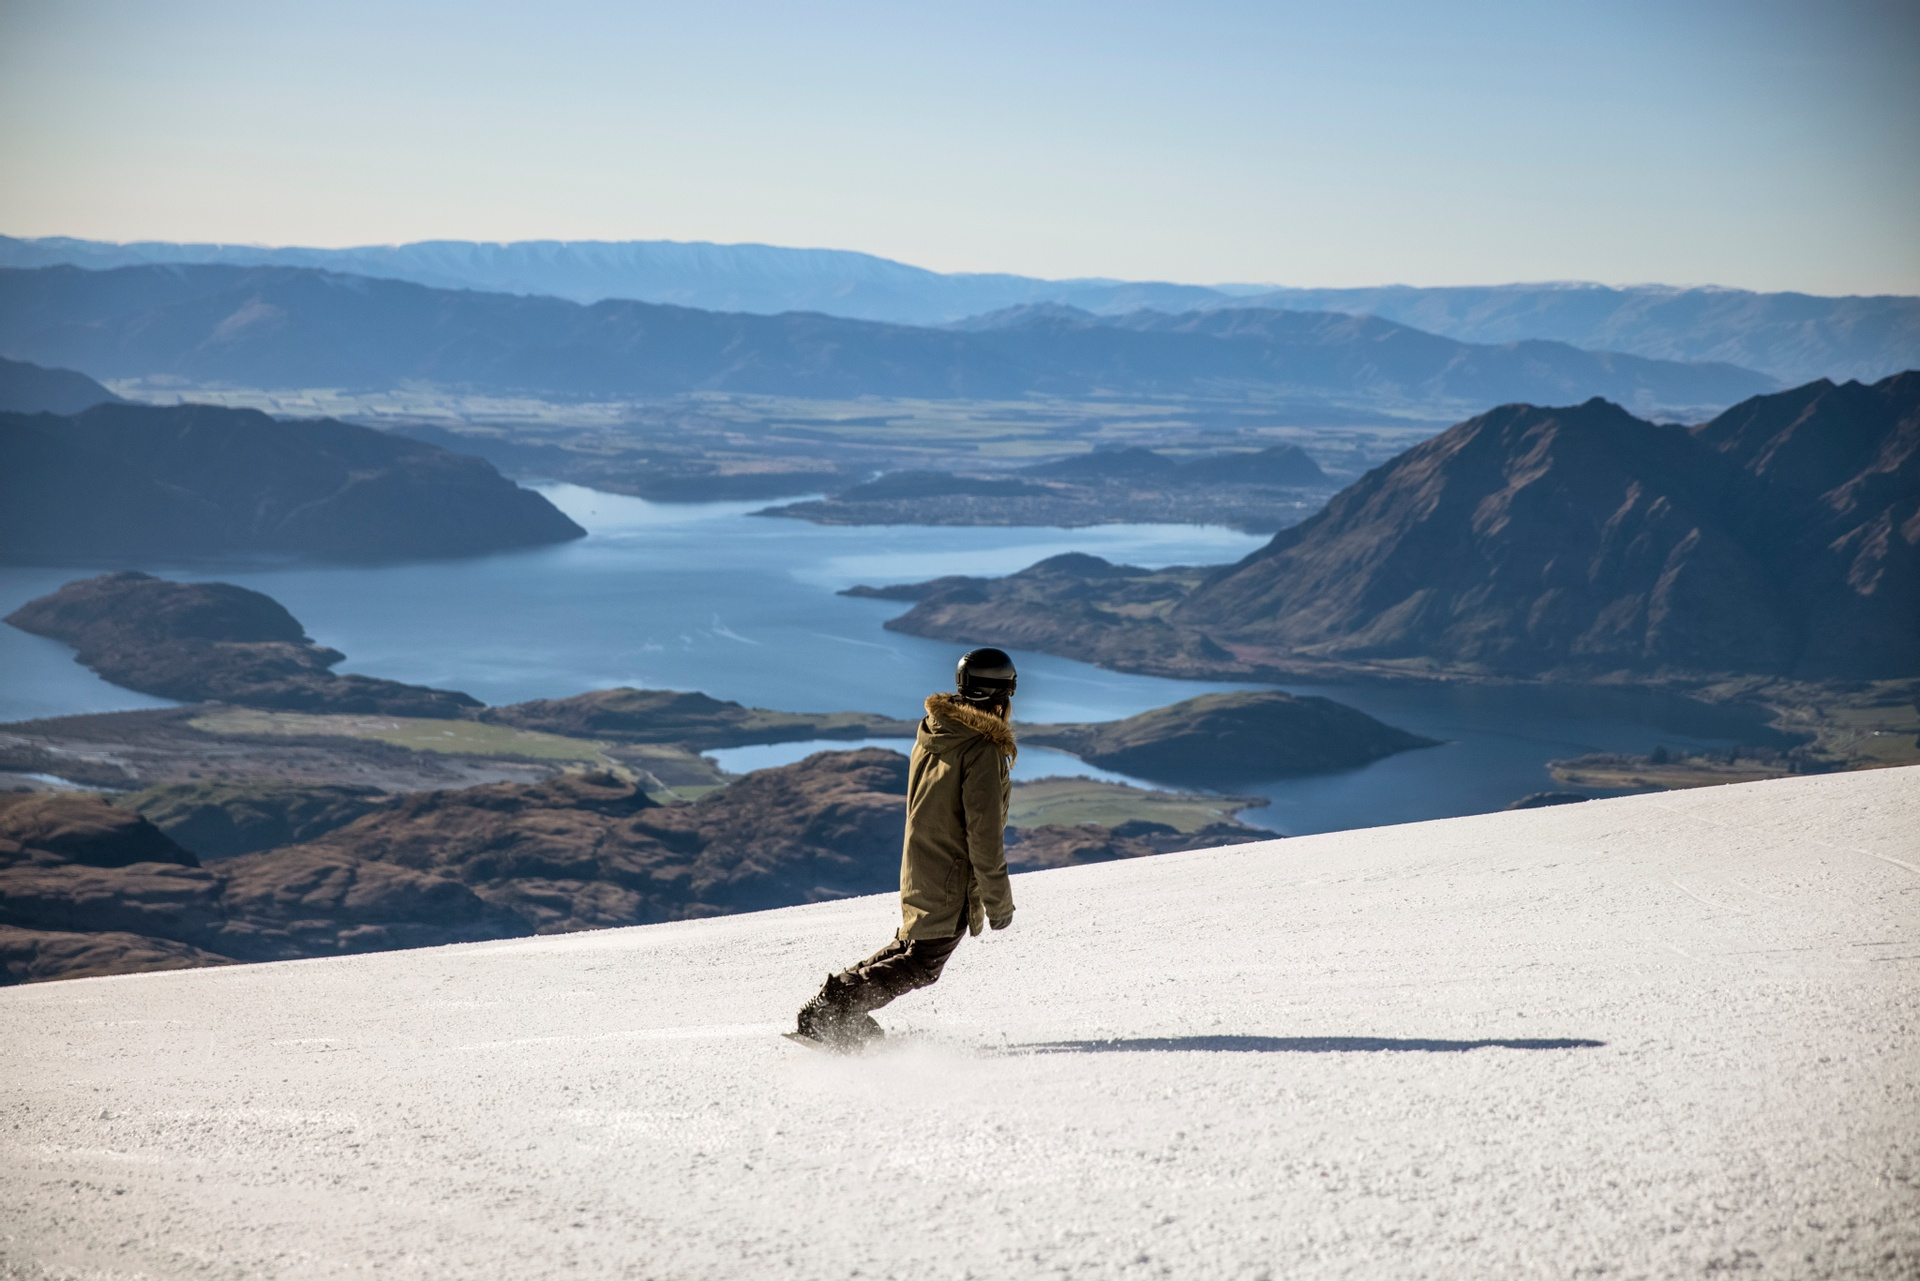 High above Wanaka at Treble Cone. Pic courtesy Miles Holden and TNZ.